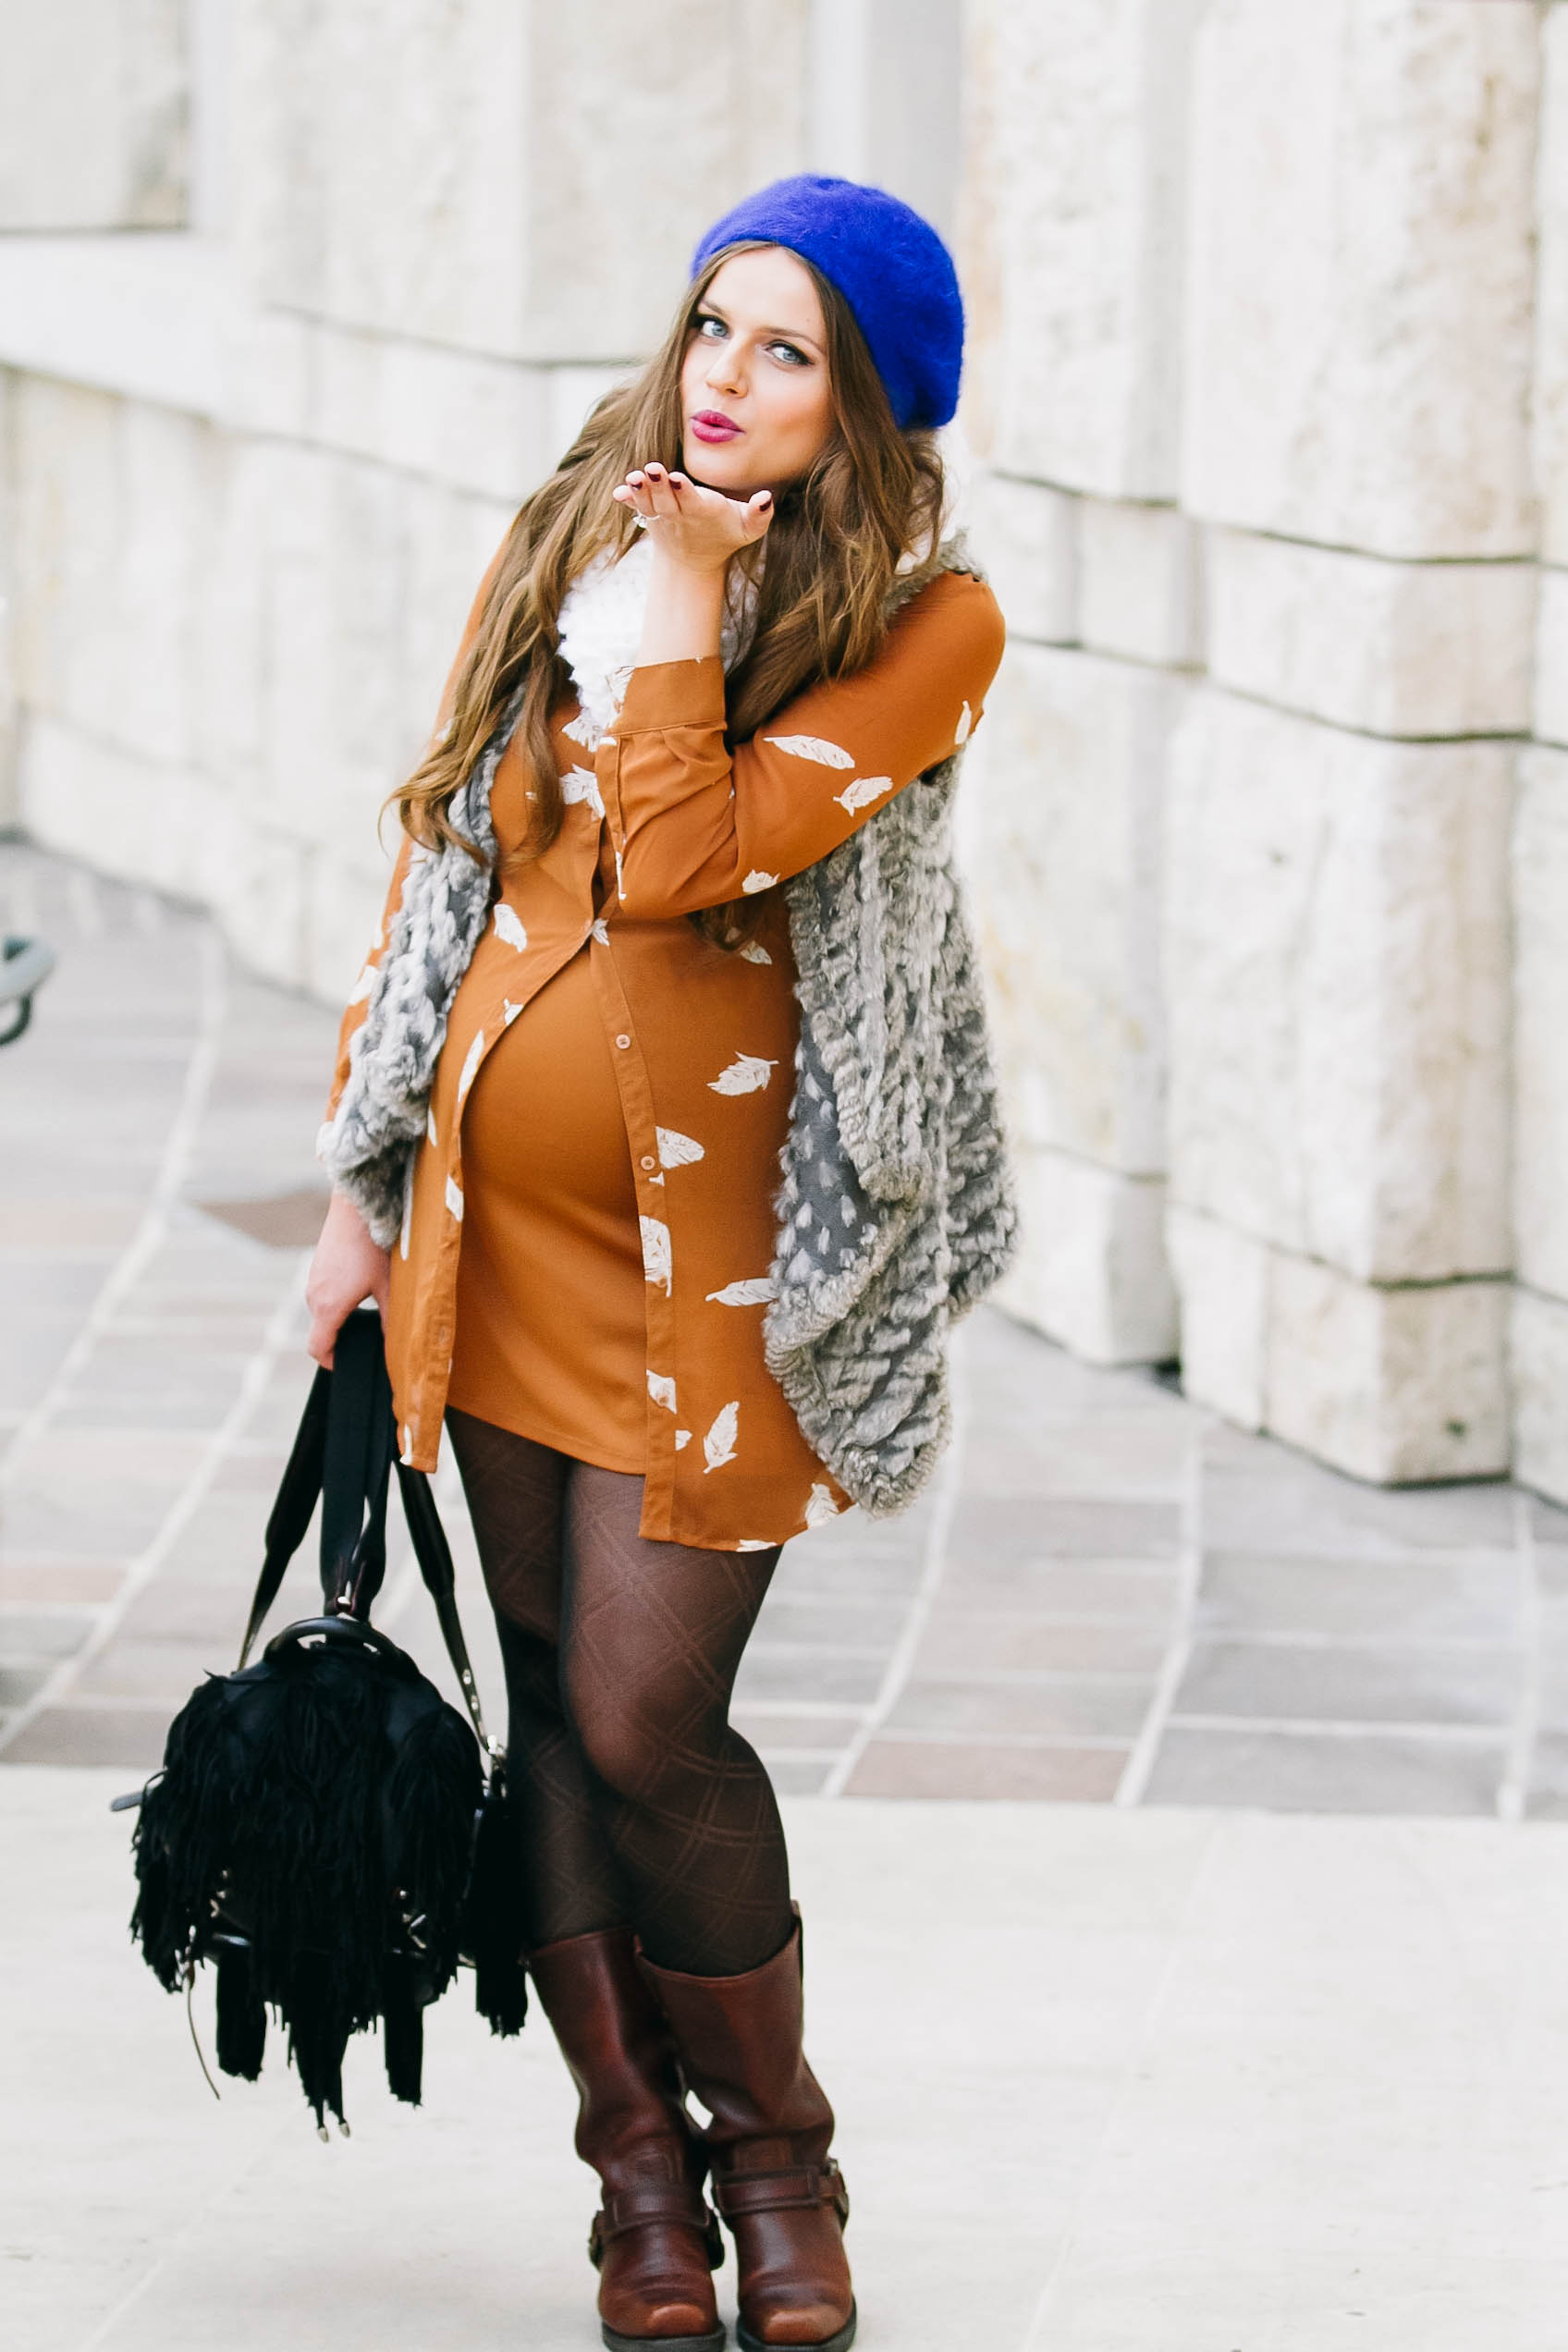 Bumpstyle Boho Glam Shirtdress Fur Vest